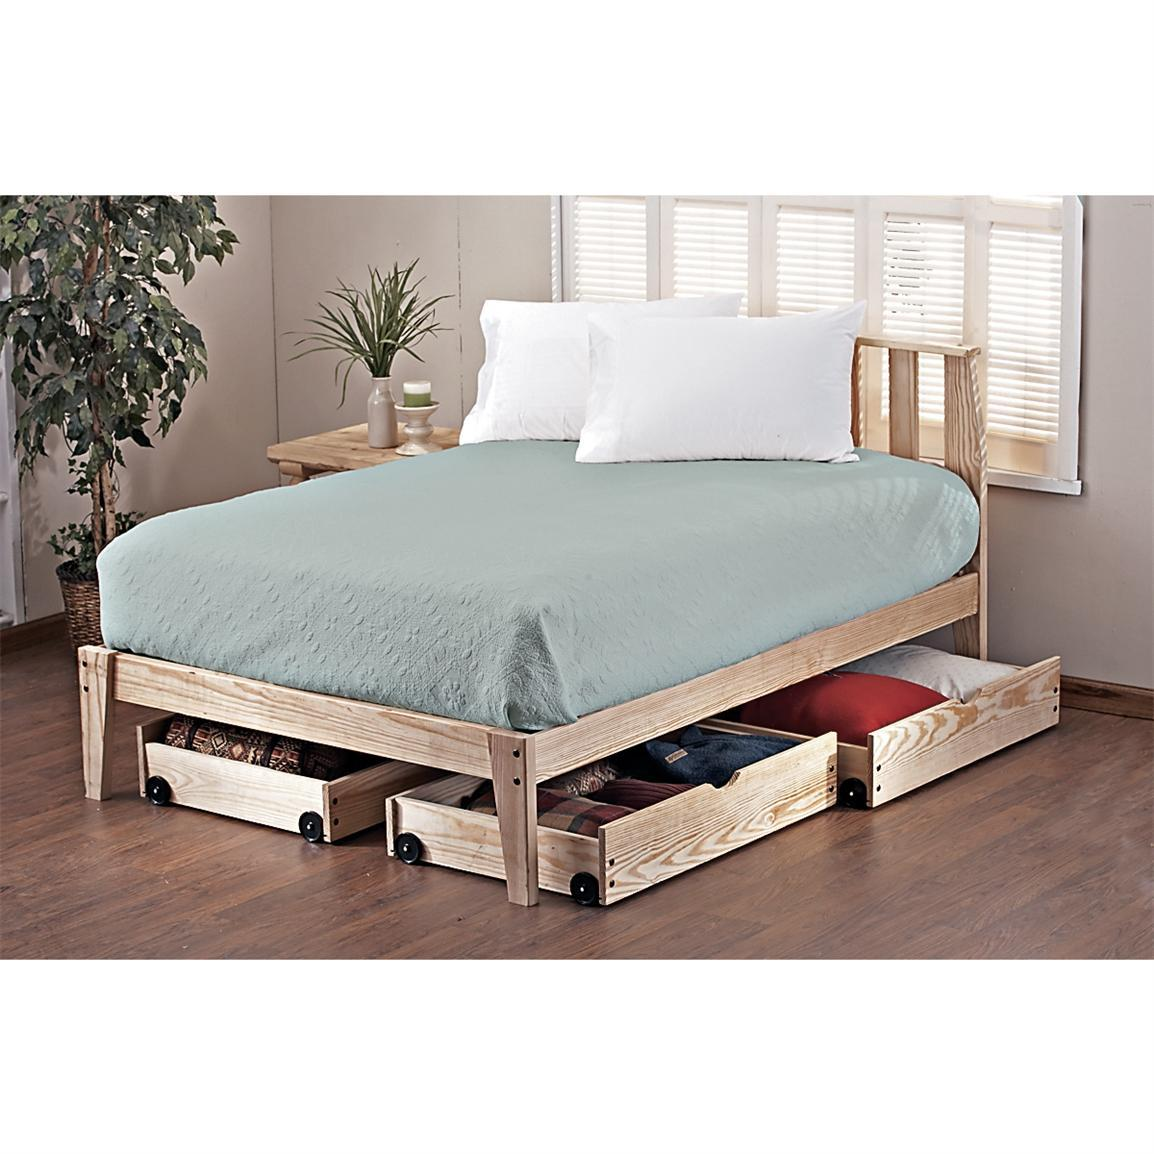 Wood Twin Bed Frame Image